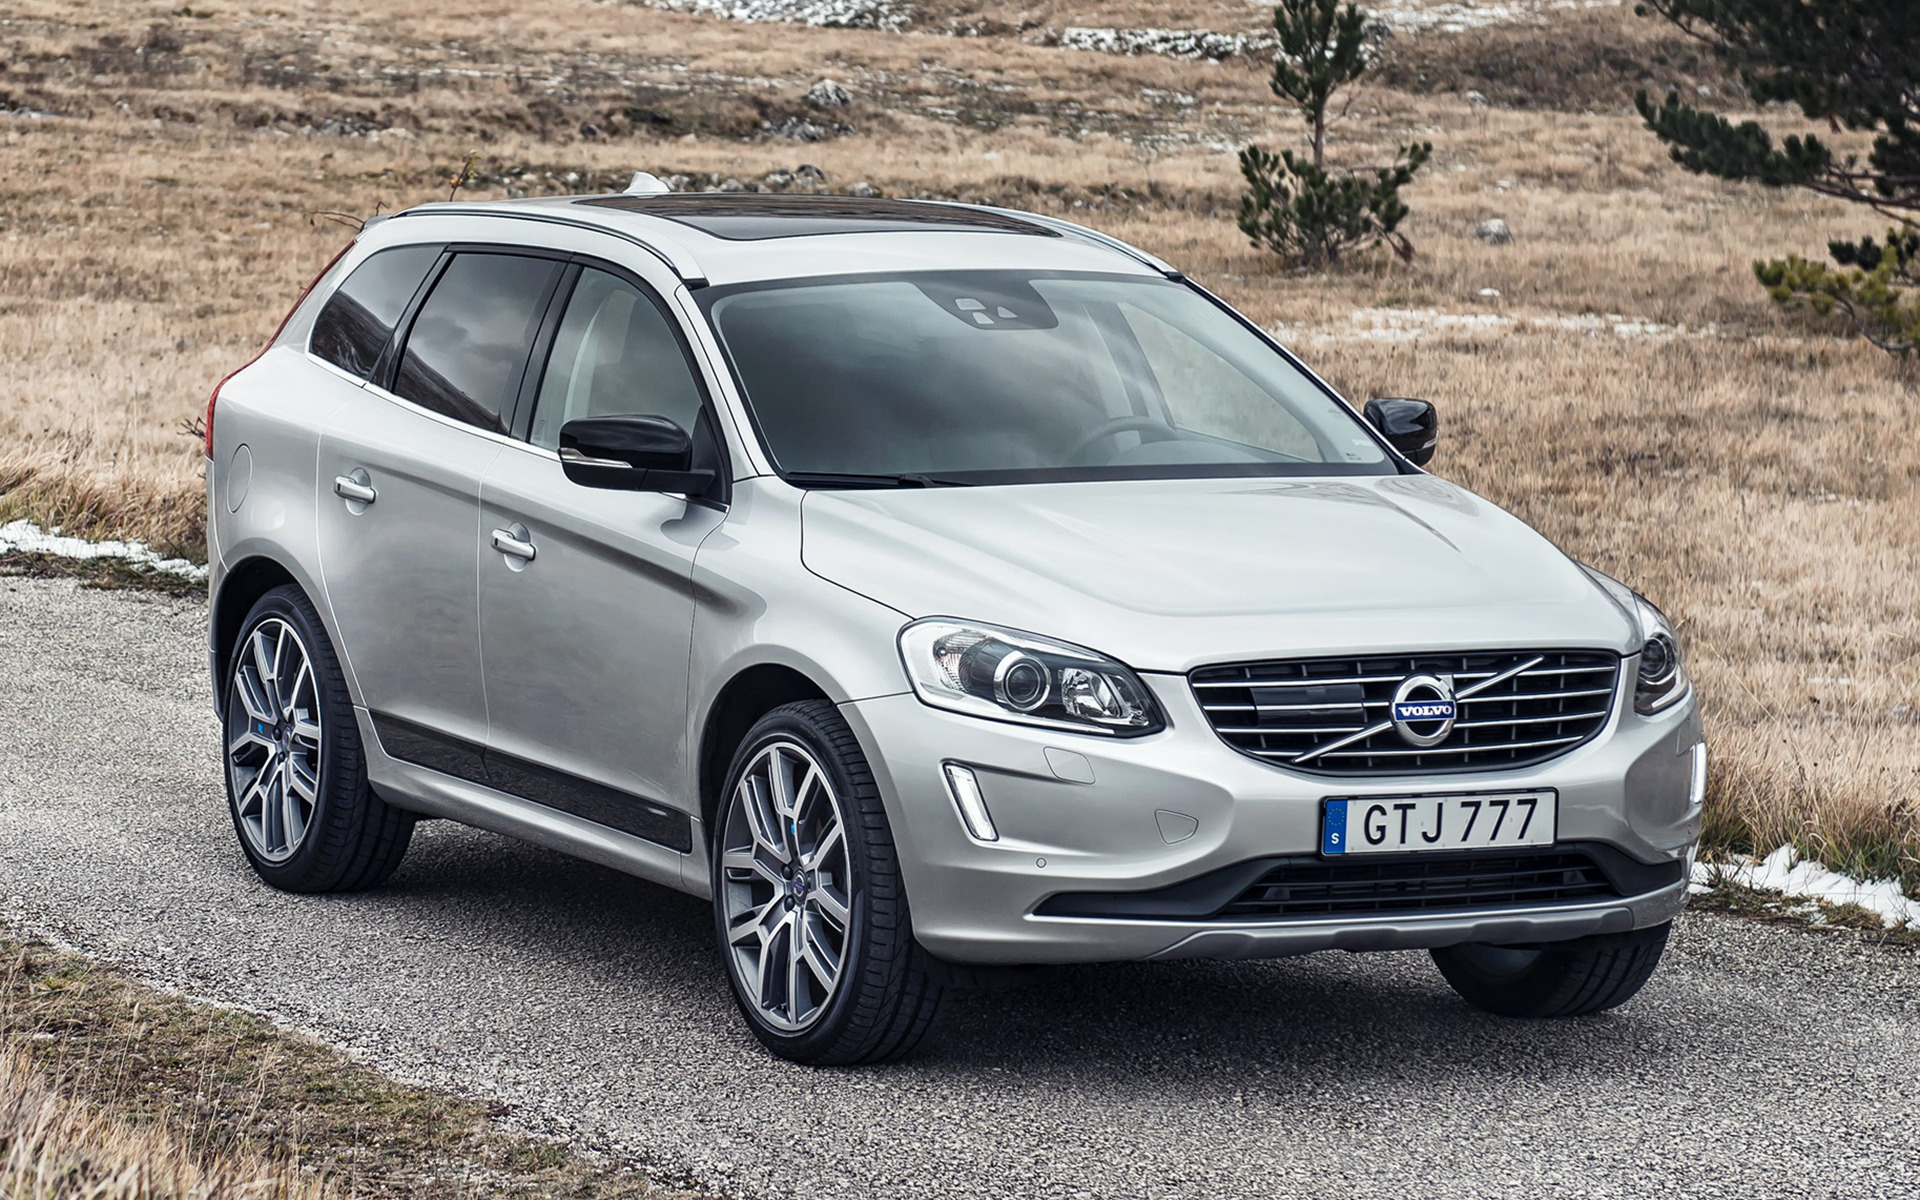 Volvo Xc60 Polestar Parts 2016 Wallpapers And Hd Images Car Pixel